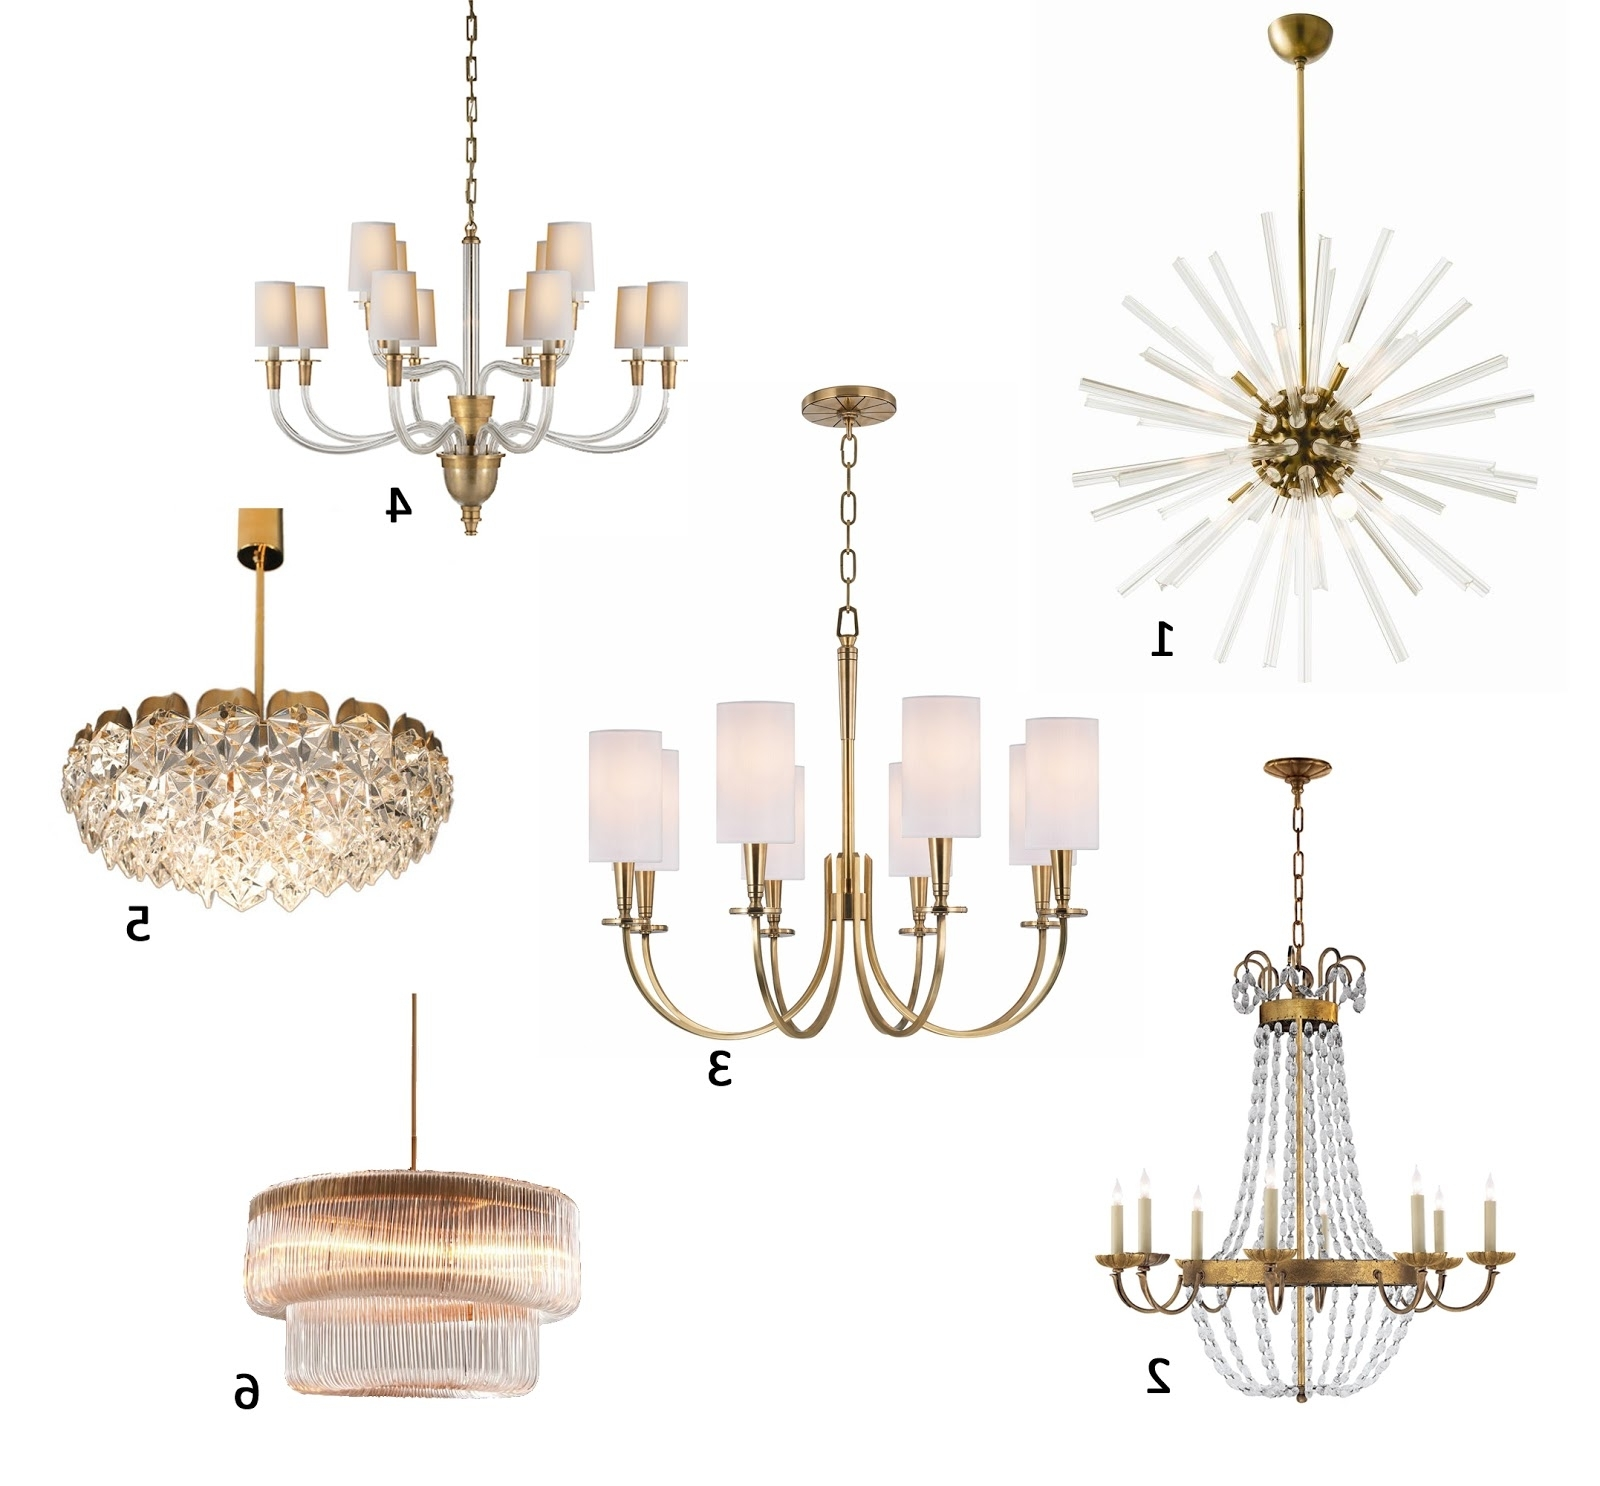 Recent Traditional Brass Chandeliers Pertaining To Am Dolce Vita: A Roundup Of My Favourite Brass Chandeliers (View 10 of 15)